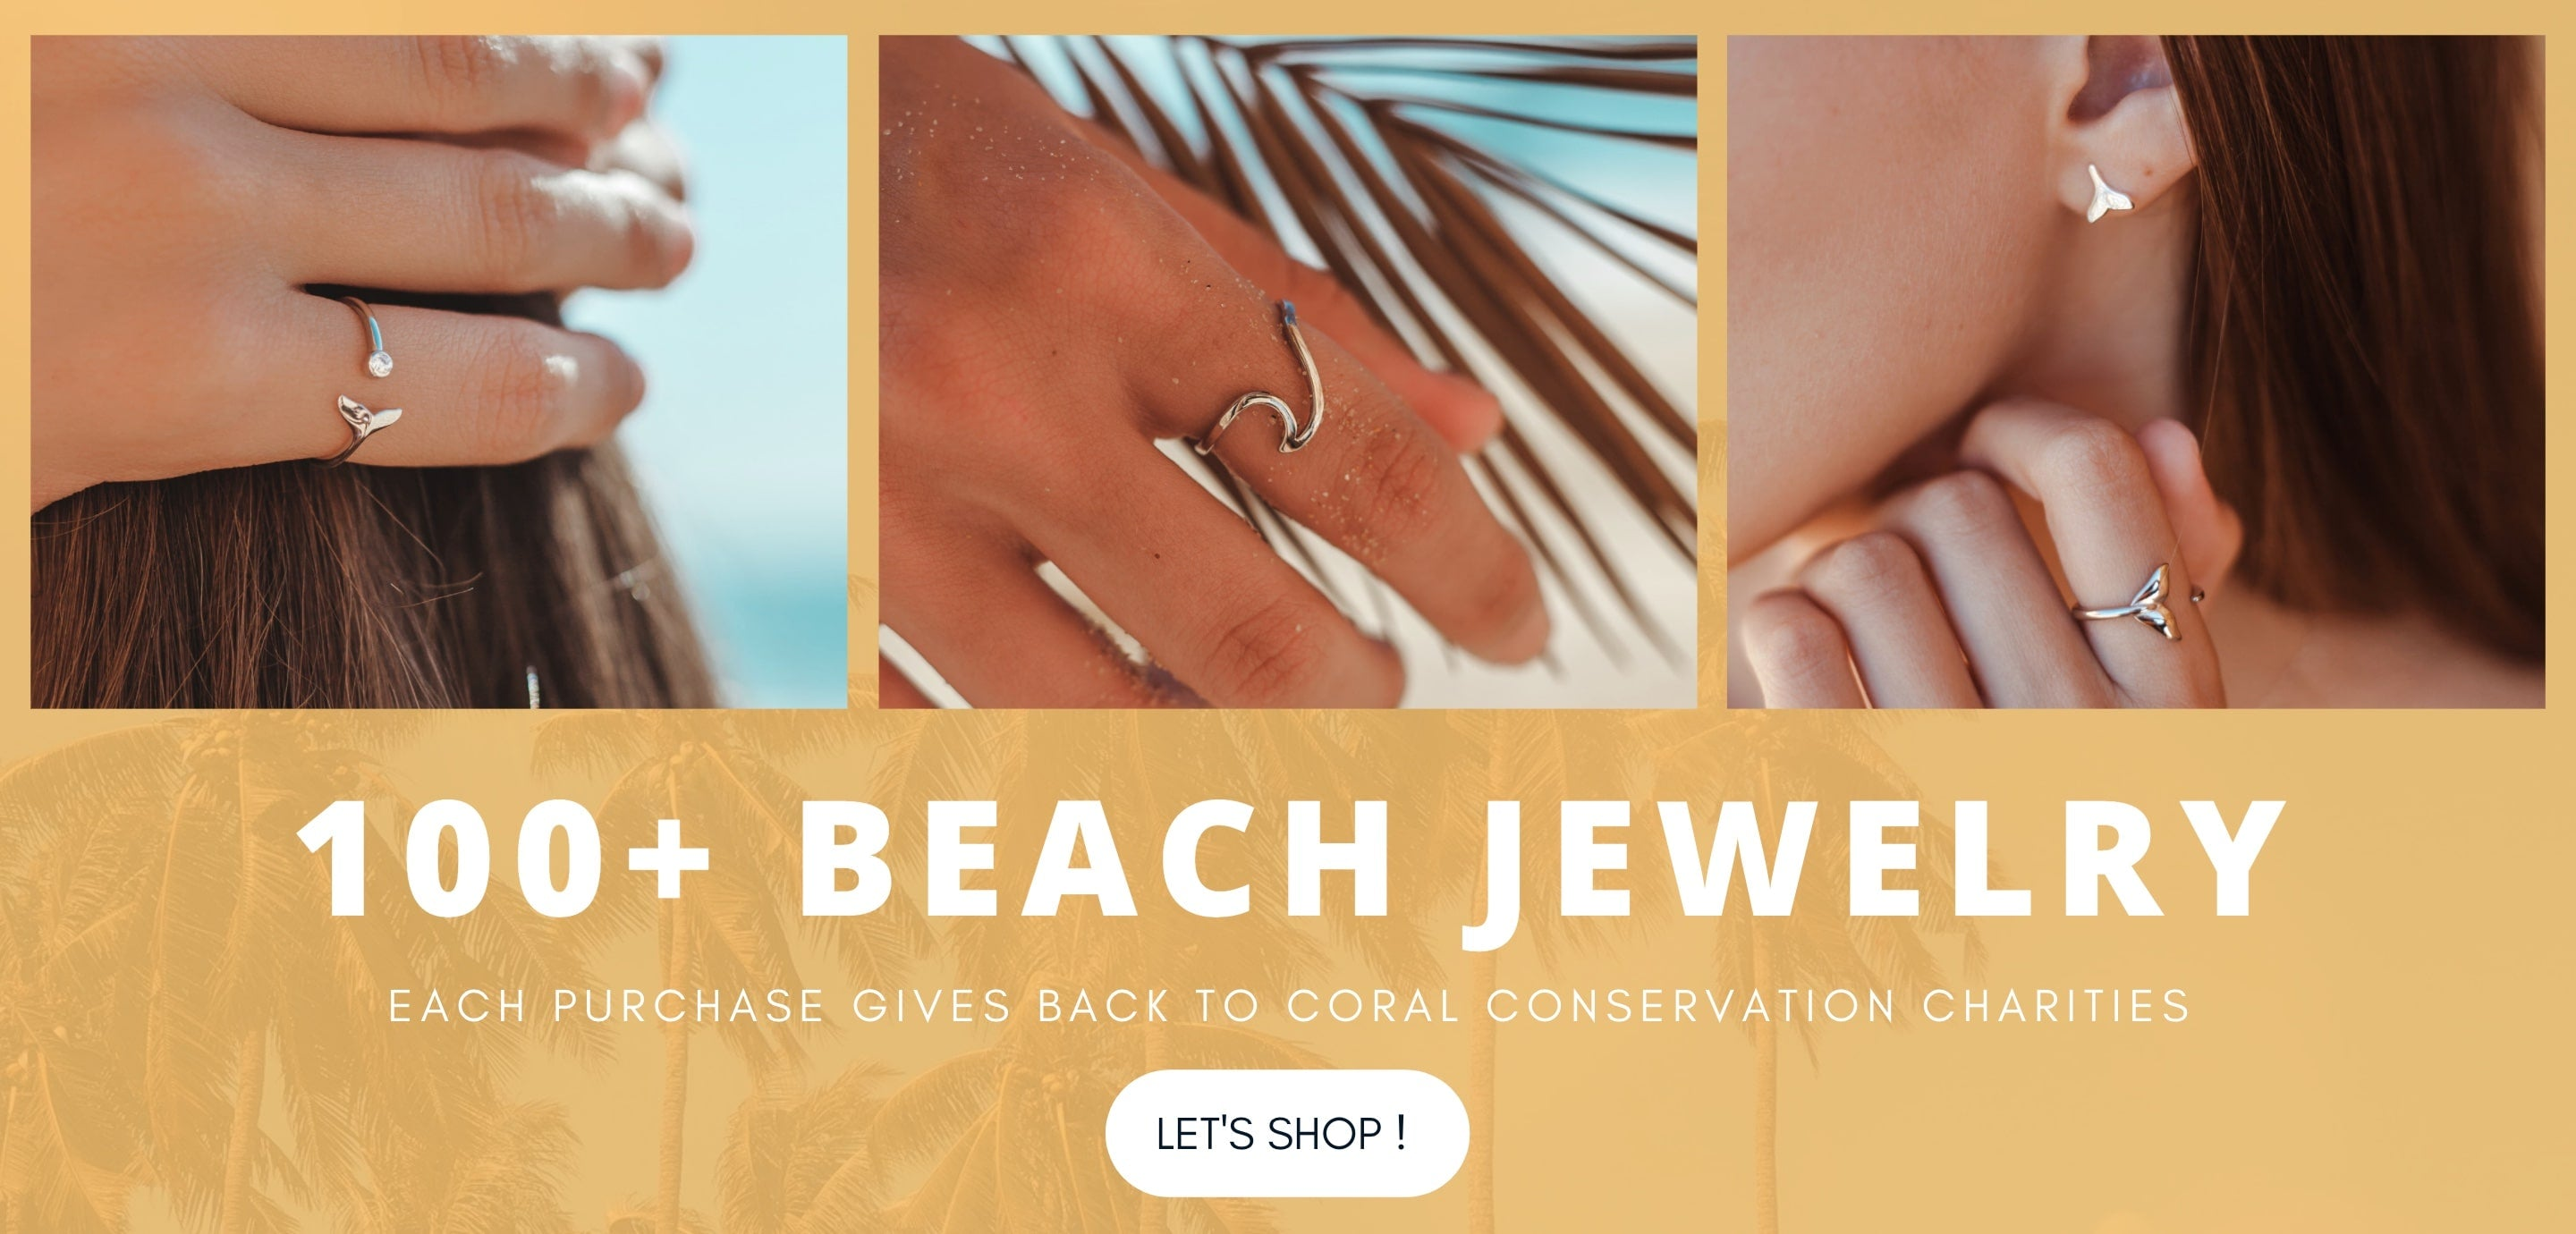 Wear Jewelry At Beach